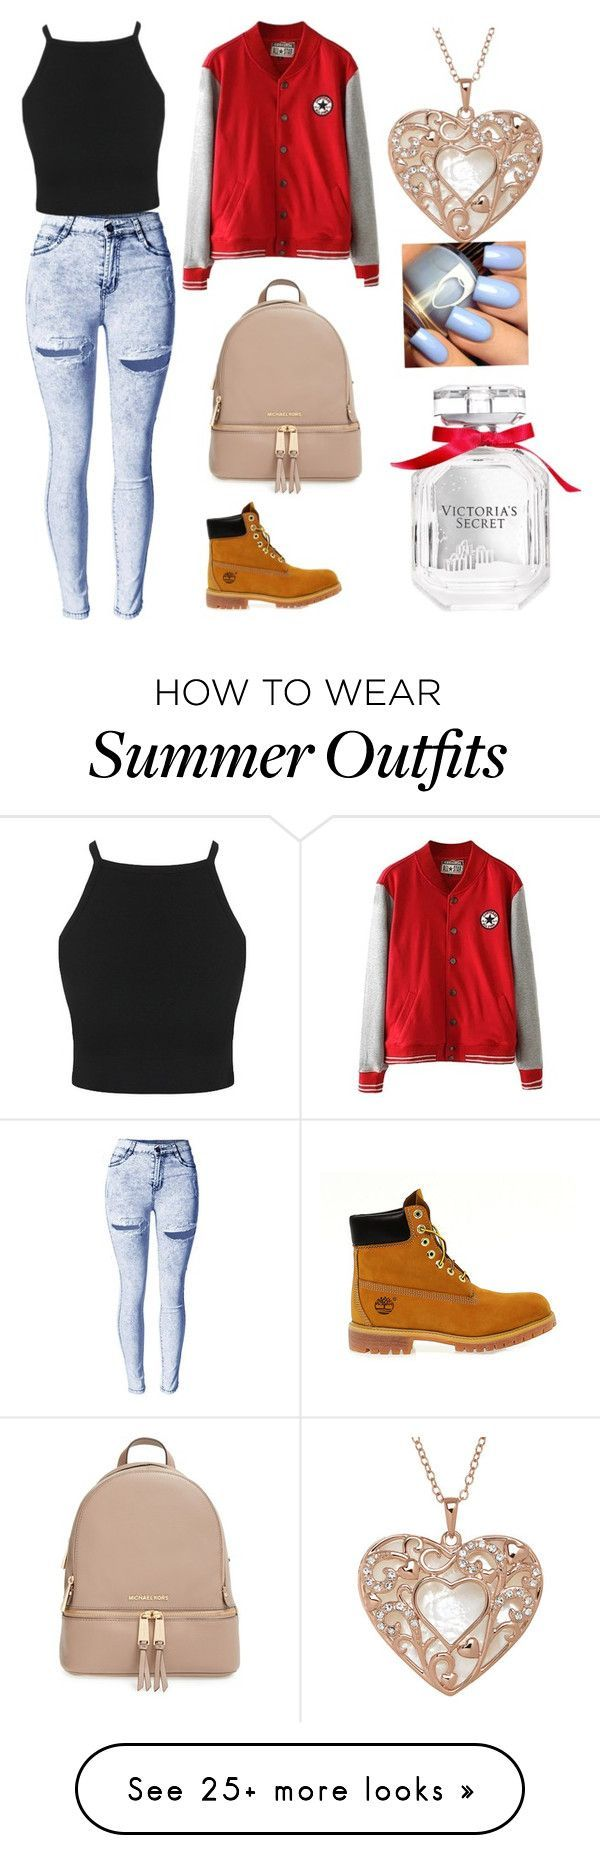 """""""Total KC outfit"""" by areezachohan on Polyvore featuring MICHAEL Michael Kors, Timberland and Victoria's Secret"""